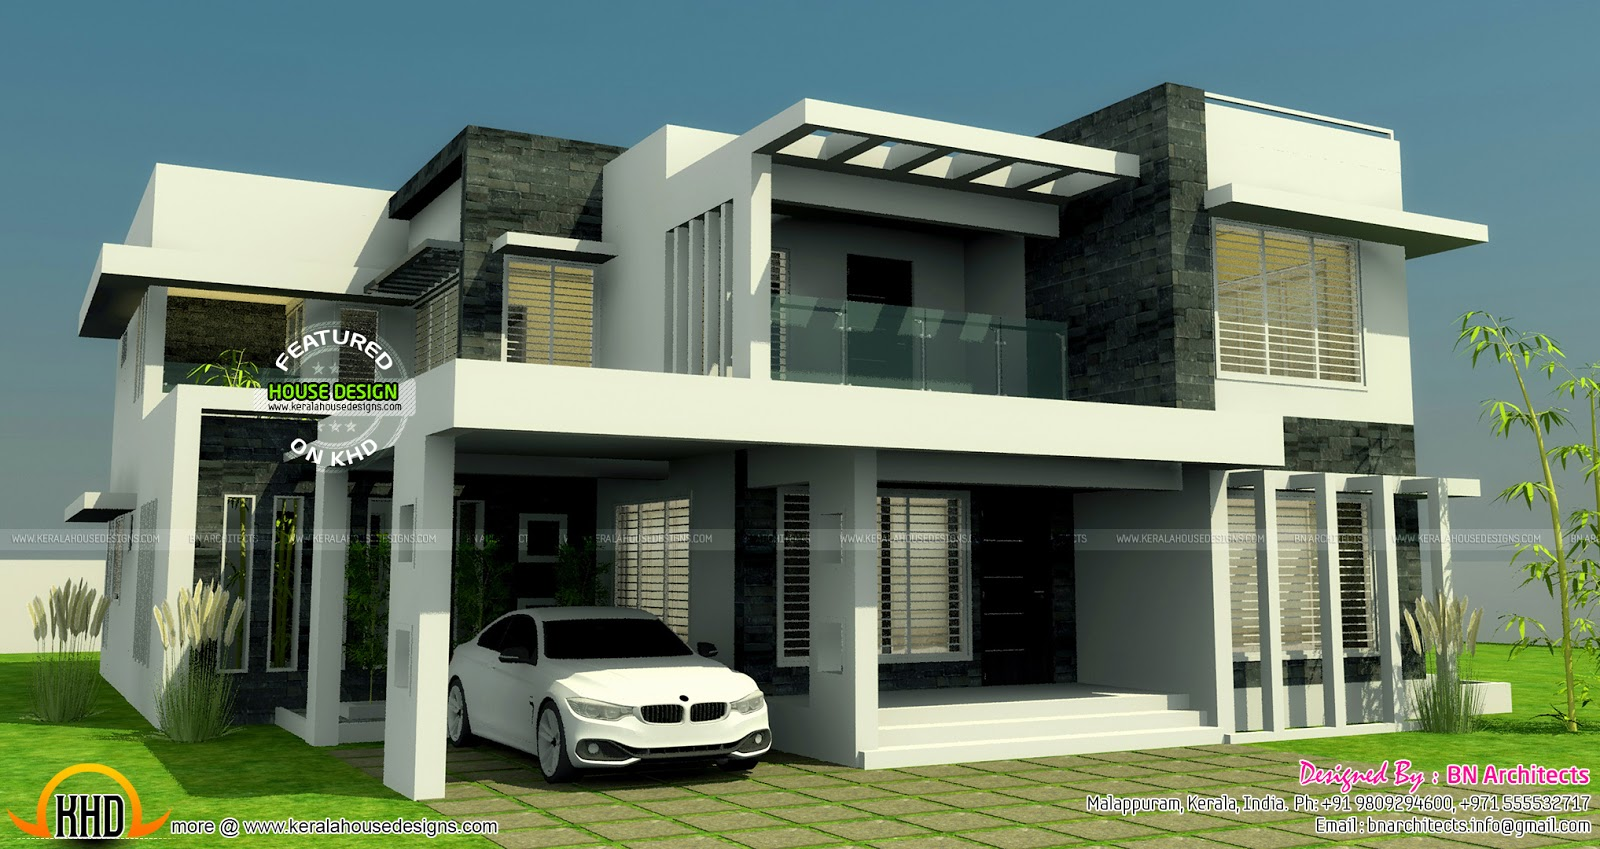 all in one house elevation floor plan and interiors On house elevation photos